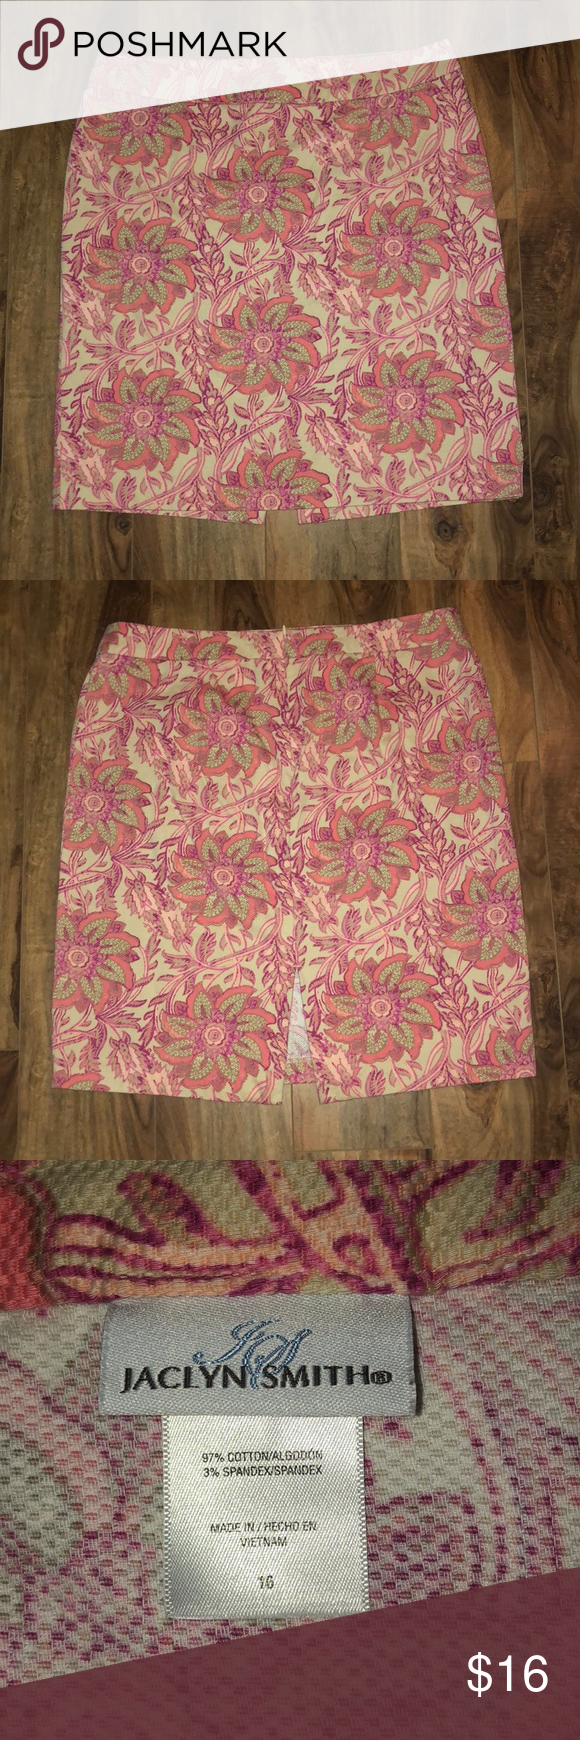 """fd69a0639b Colorful Skirt Colorful short skirt in pink tones, size 16. Brand """"Jaclyn  Smith."""" The fabric feels similar to corduroy. Length is 23"""" from waist to  hem; ..."""